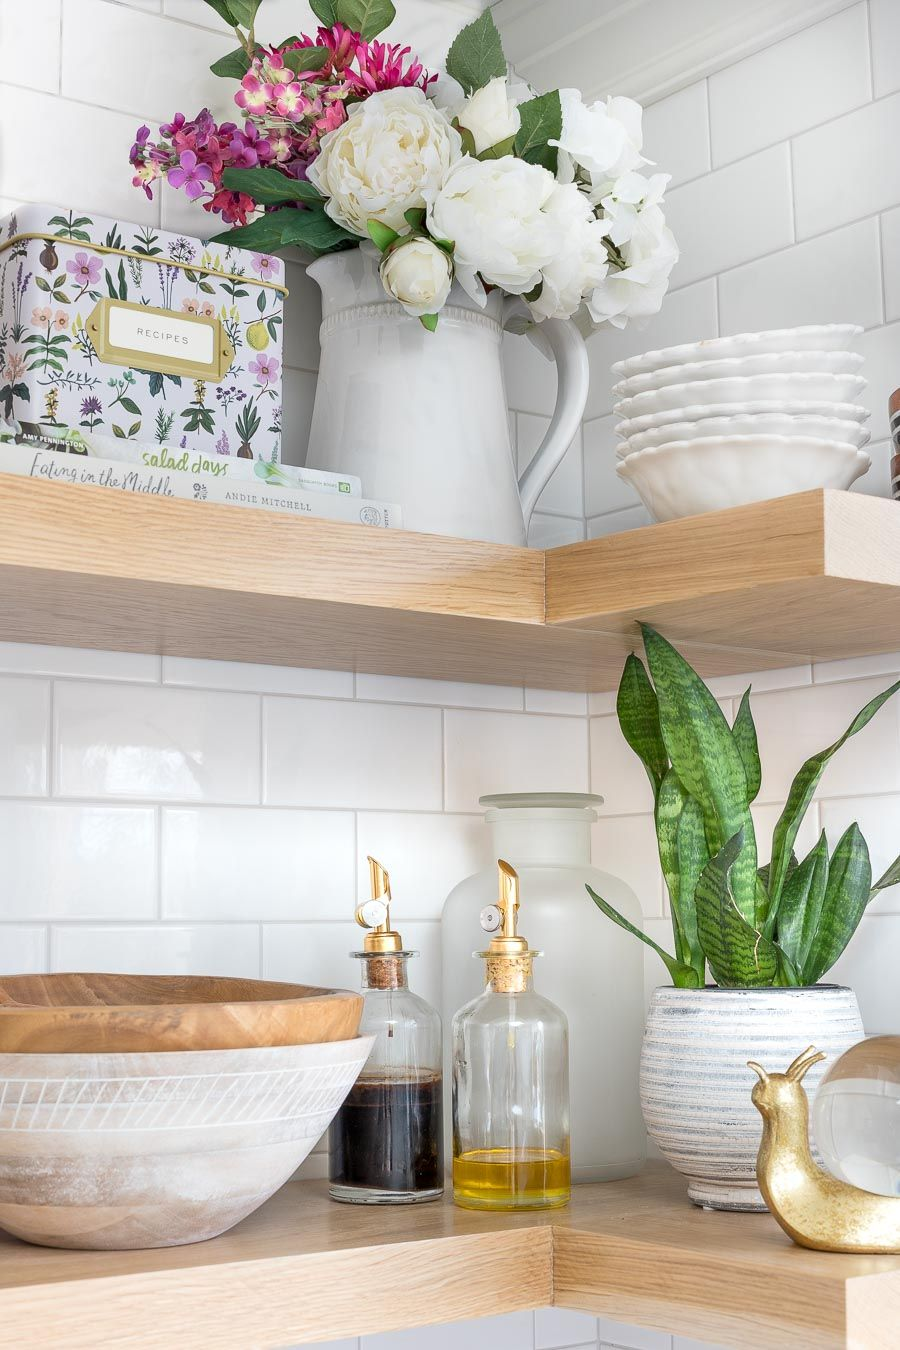 DIY Floating Corner Shelves in Our Kitchen All the